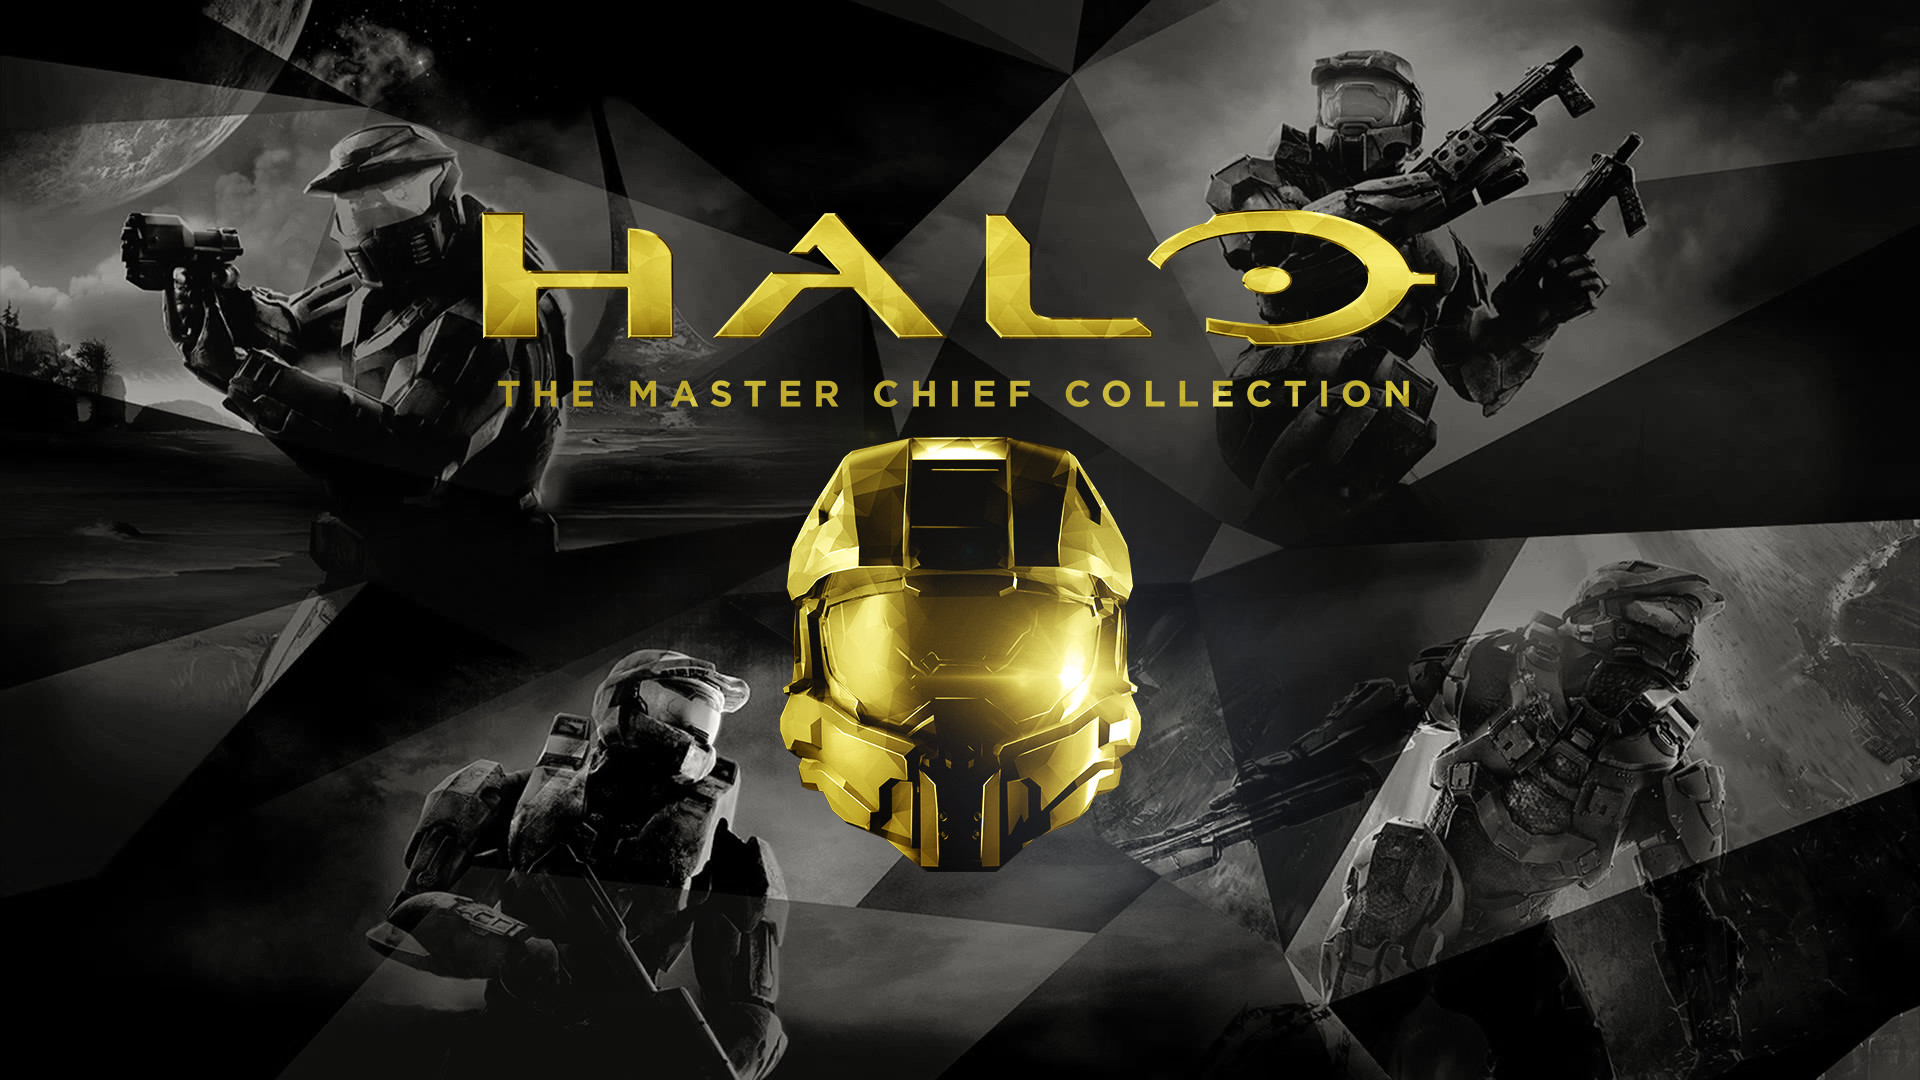 MCC Halo Xbox One Wallpaper – Pics about space